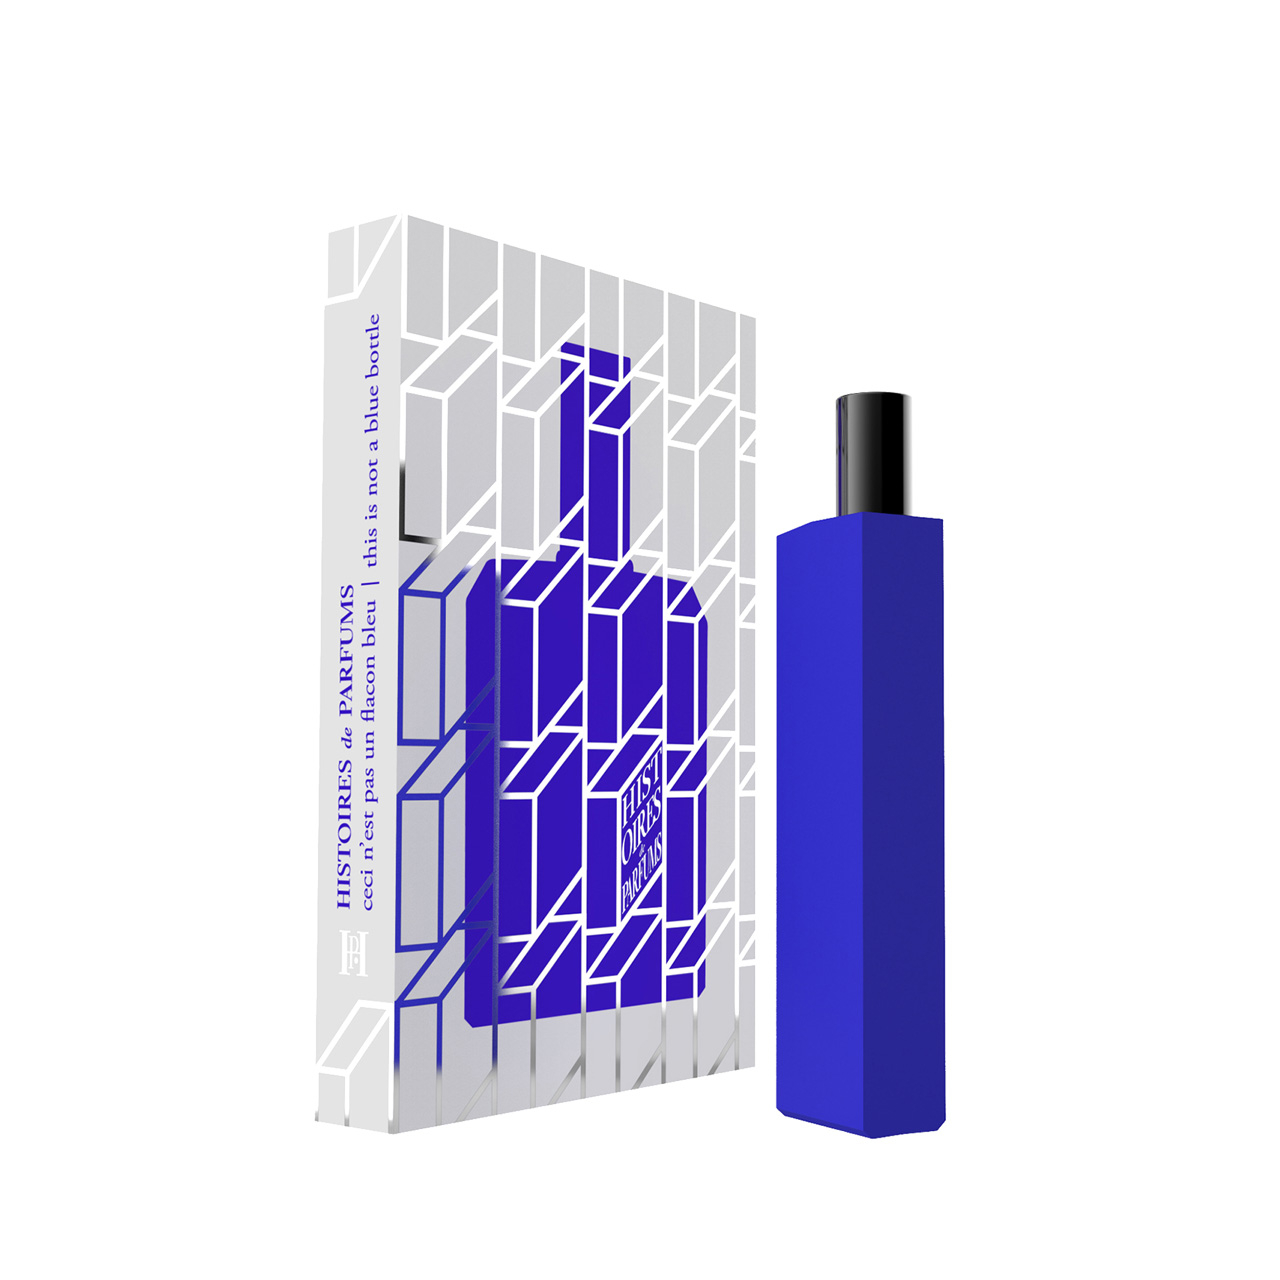 This is not a blue bottle 1/.1 - Eau de Parfum